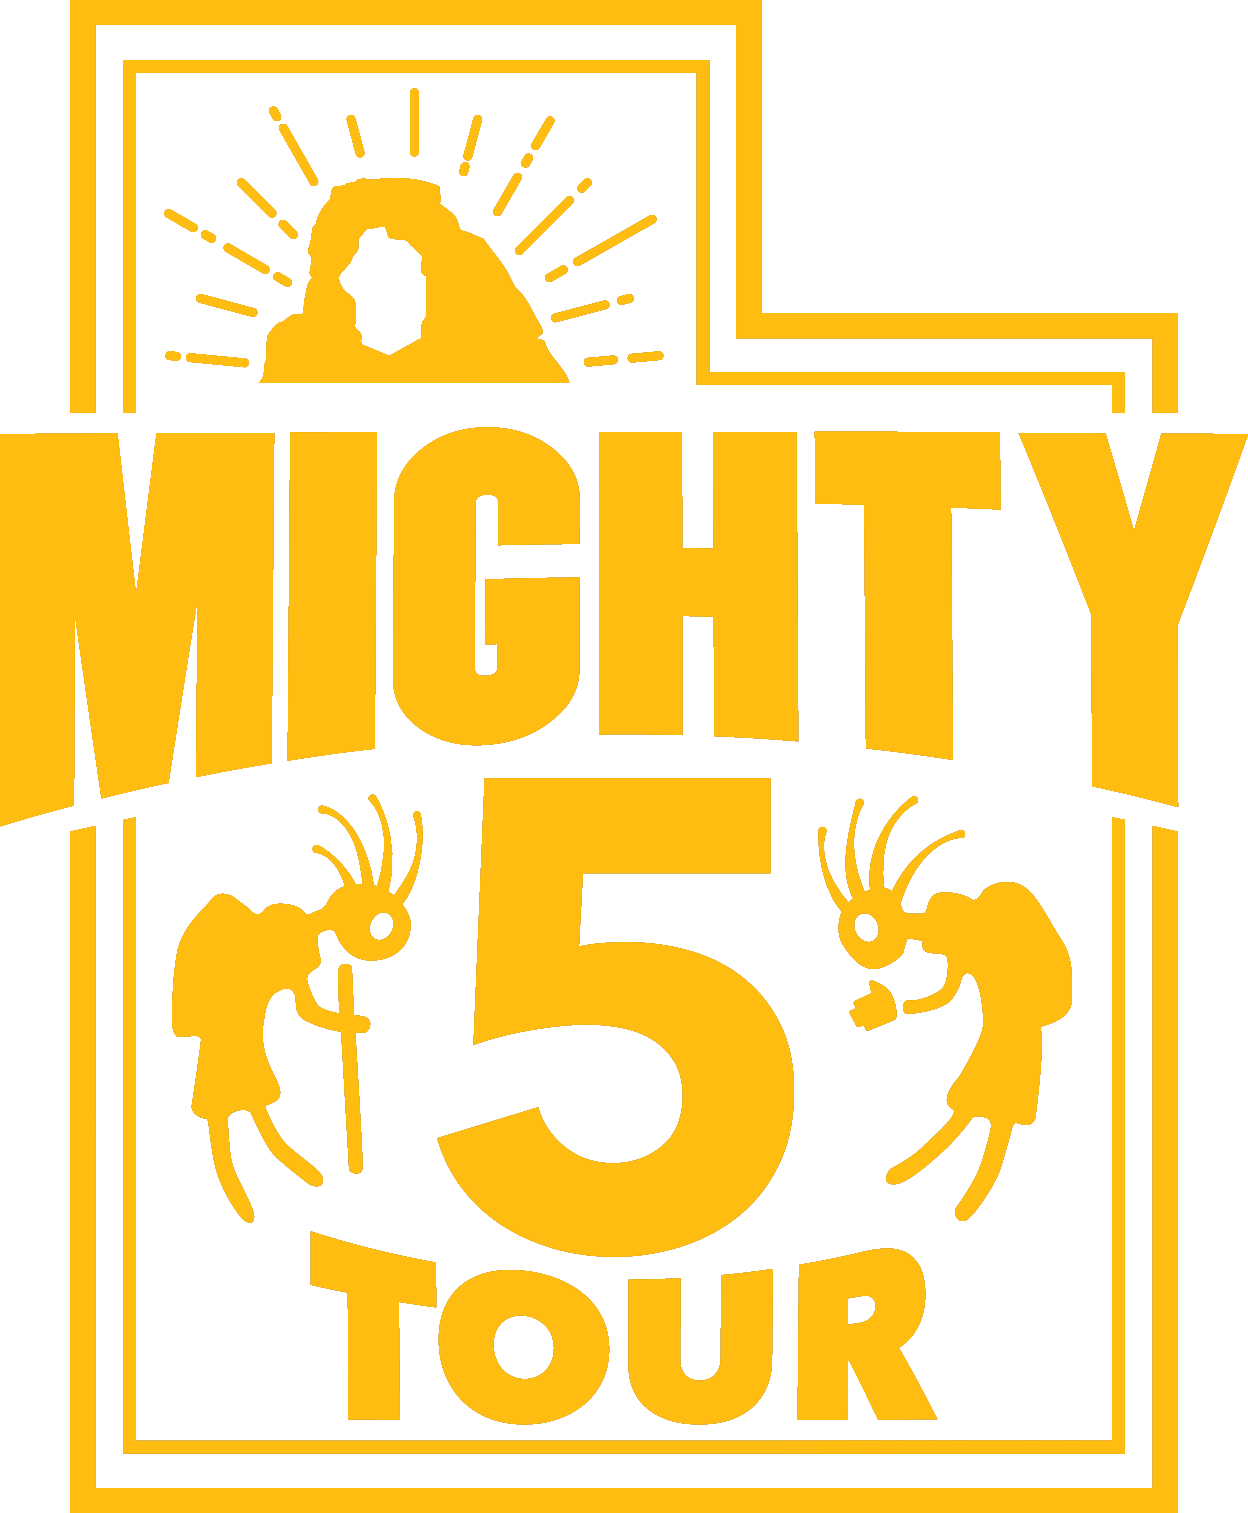 Whisper clipart office gossip. About mighty tour